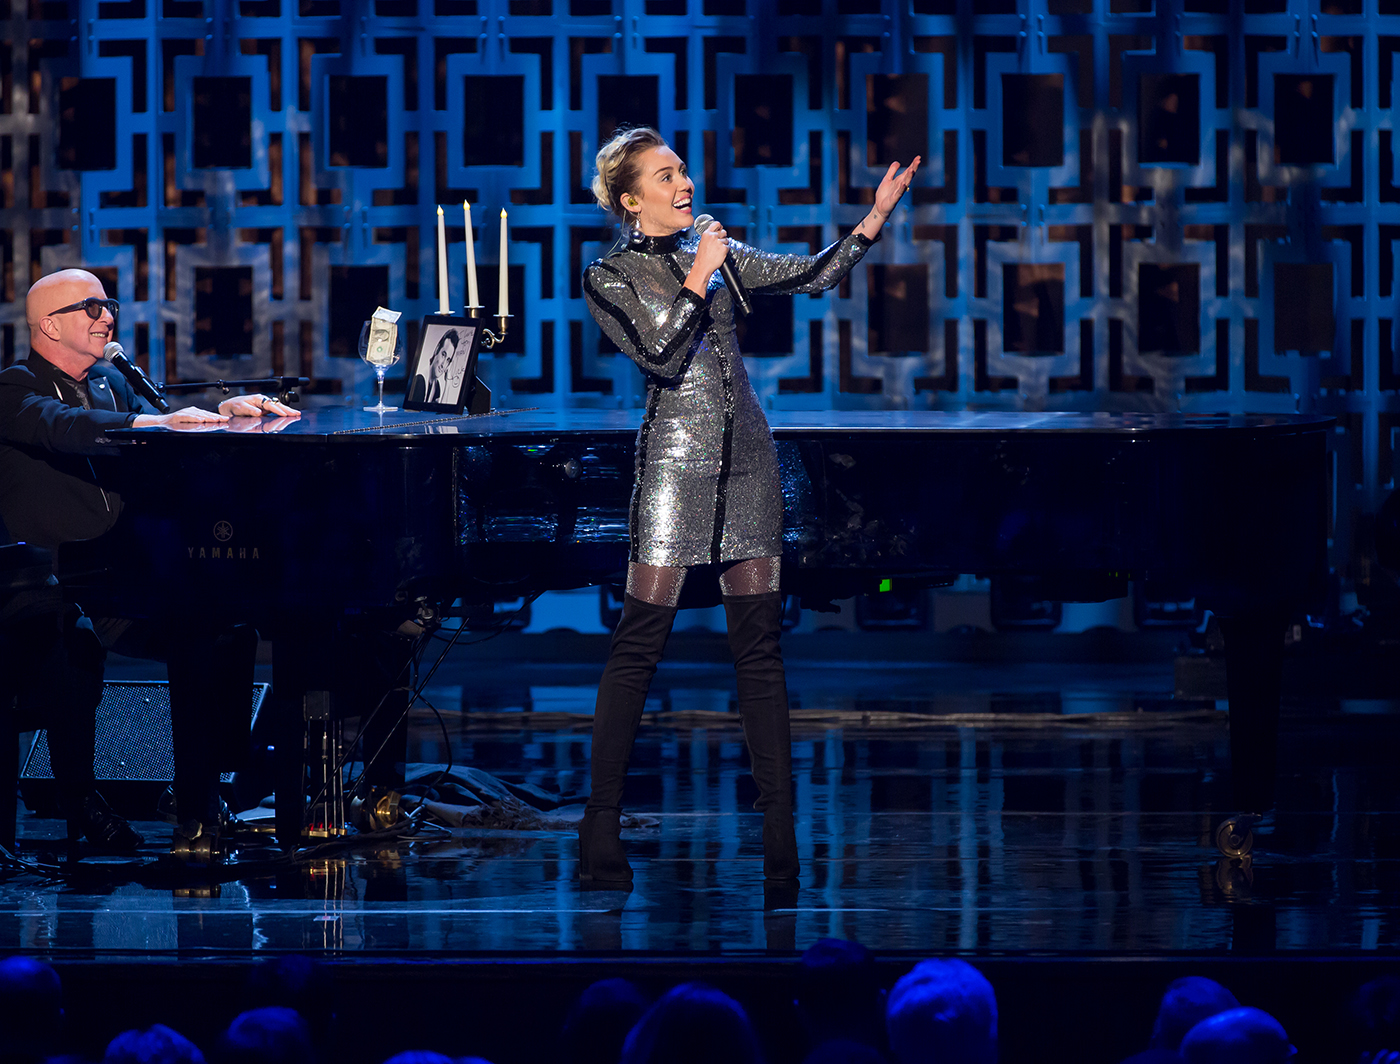 Miley Cyrus performs in front of Arcade FASTwall at the 2016 Mark Twain Awards